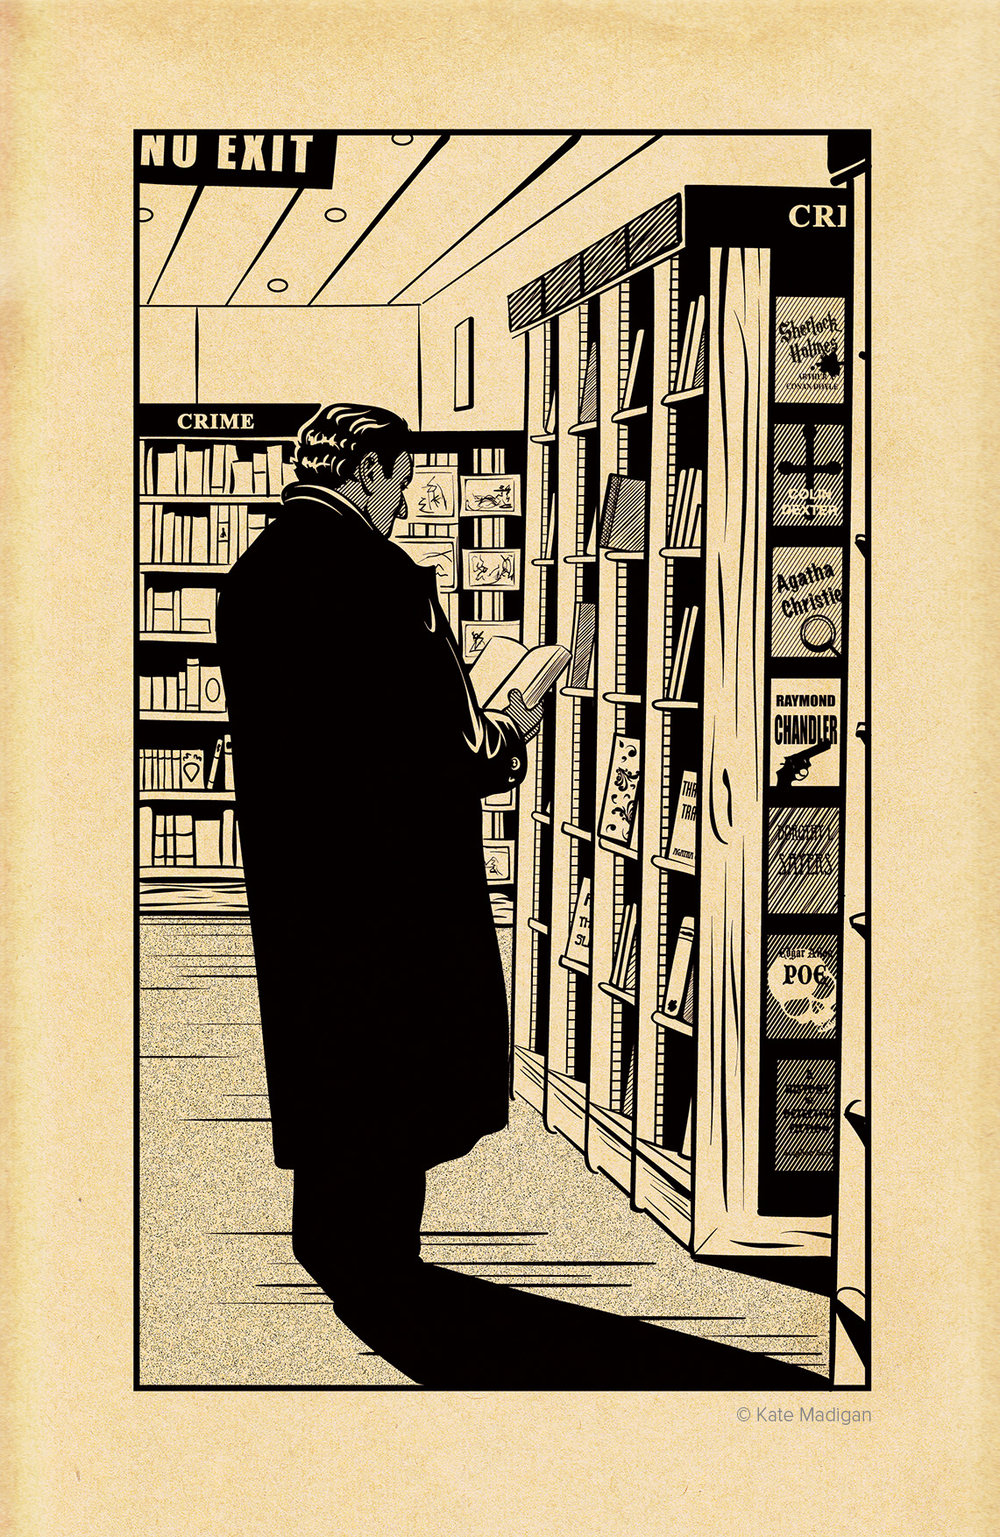 Drawing of a tough-looking, dark-haired man in an overcoat, collar turned up, lurking in the crime section of Blackwell's Bookshop, Oxford  . Classic works of detective fiction are displayed on the shelves. Created as part of my solo exhibition at Blackwell's Bookshop. Line drawing on toned, distressed paper. Copyright Kate Madigan.